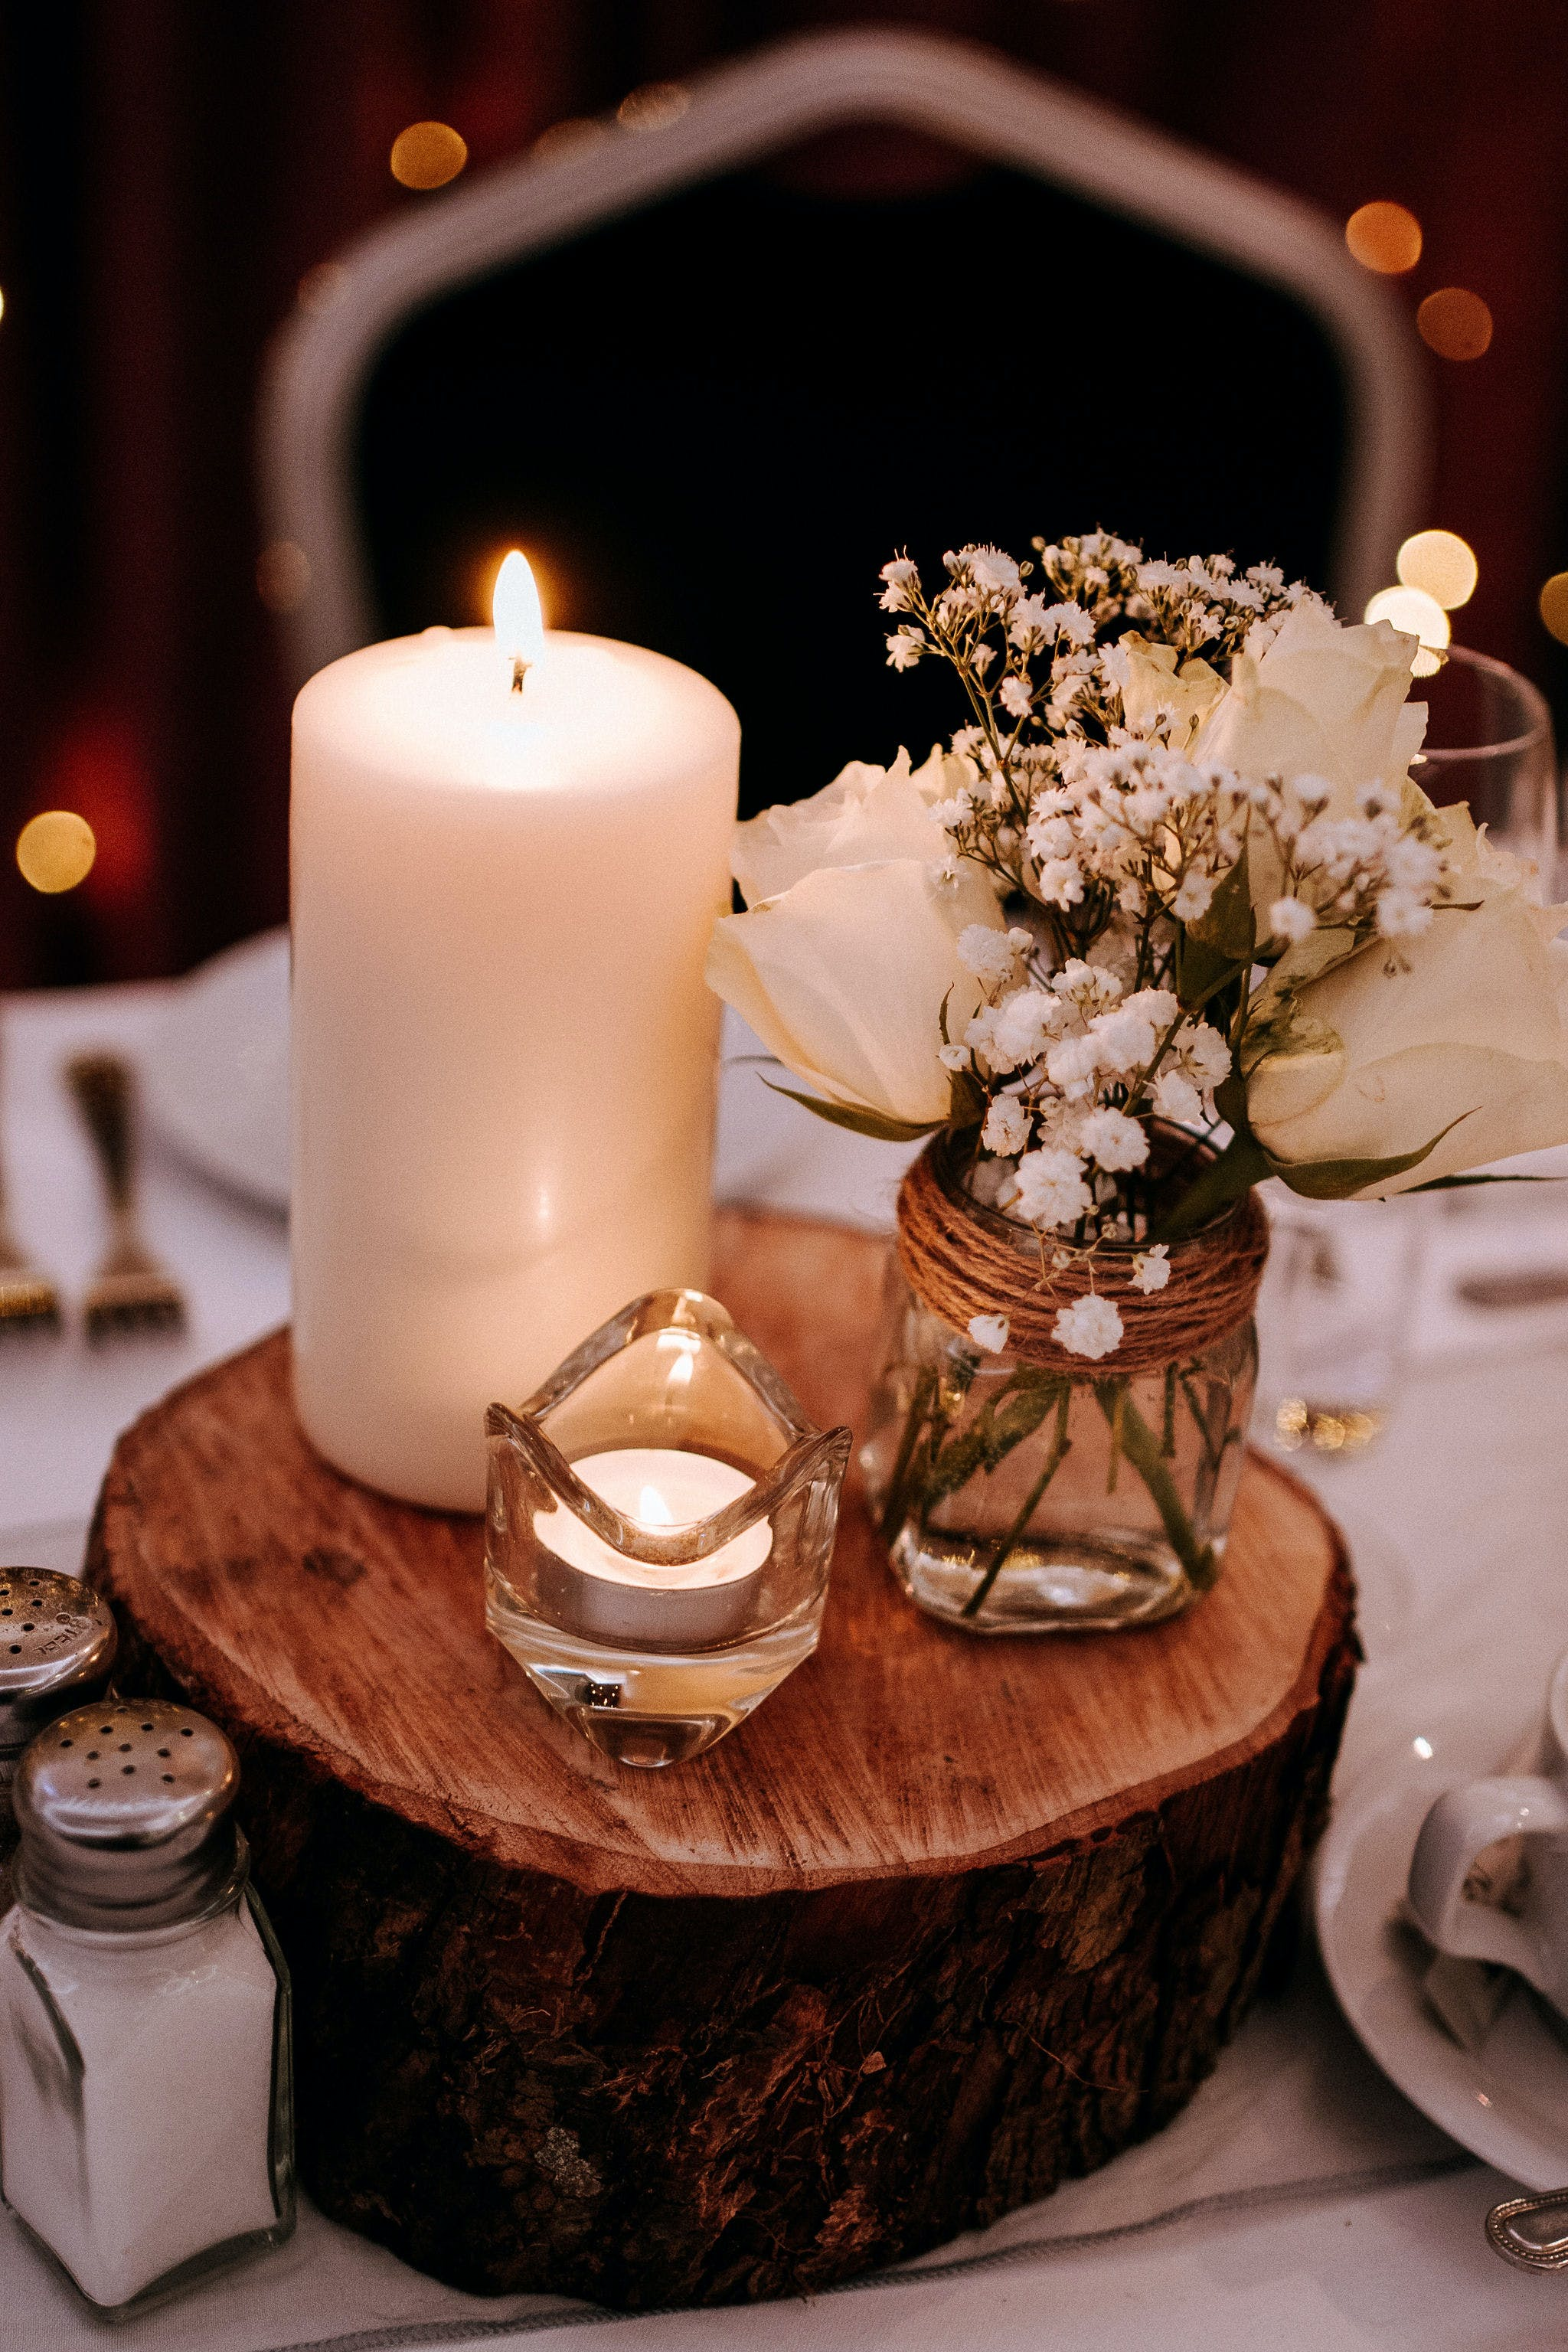 Gorgeous rustic table decorations for a wedding at Riverside Hotel.